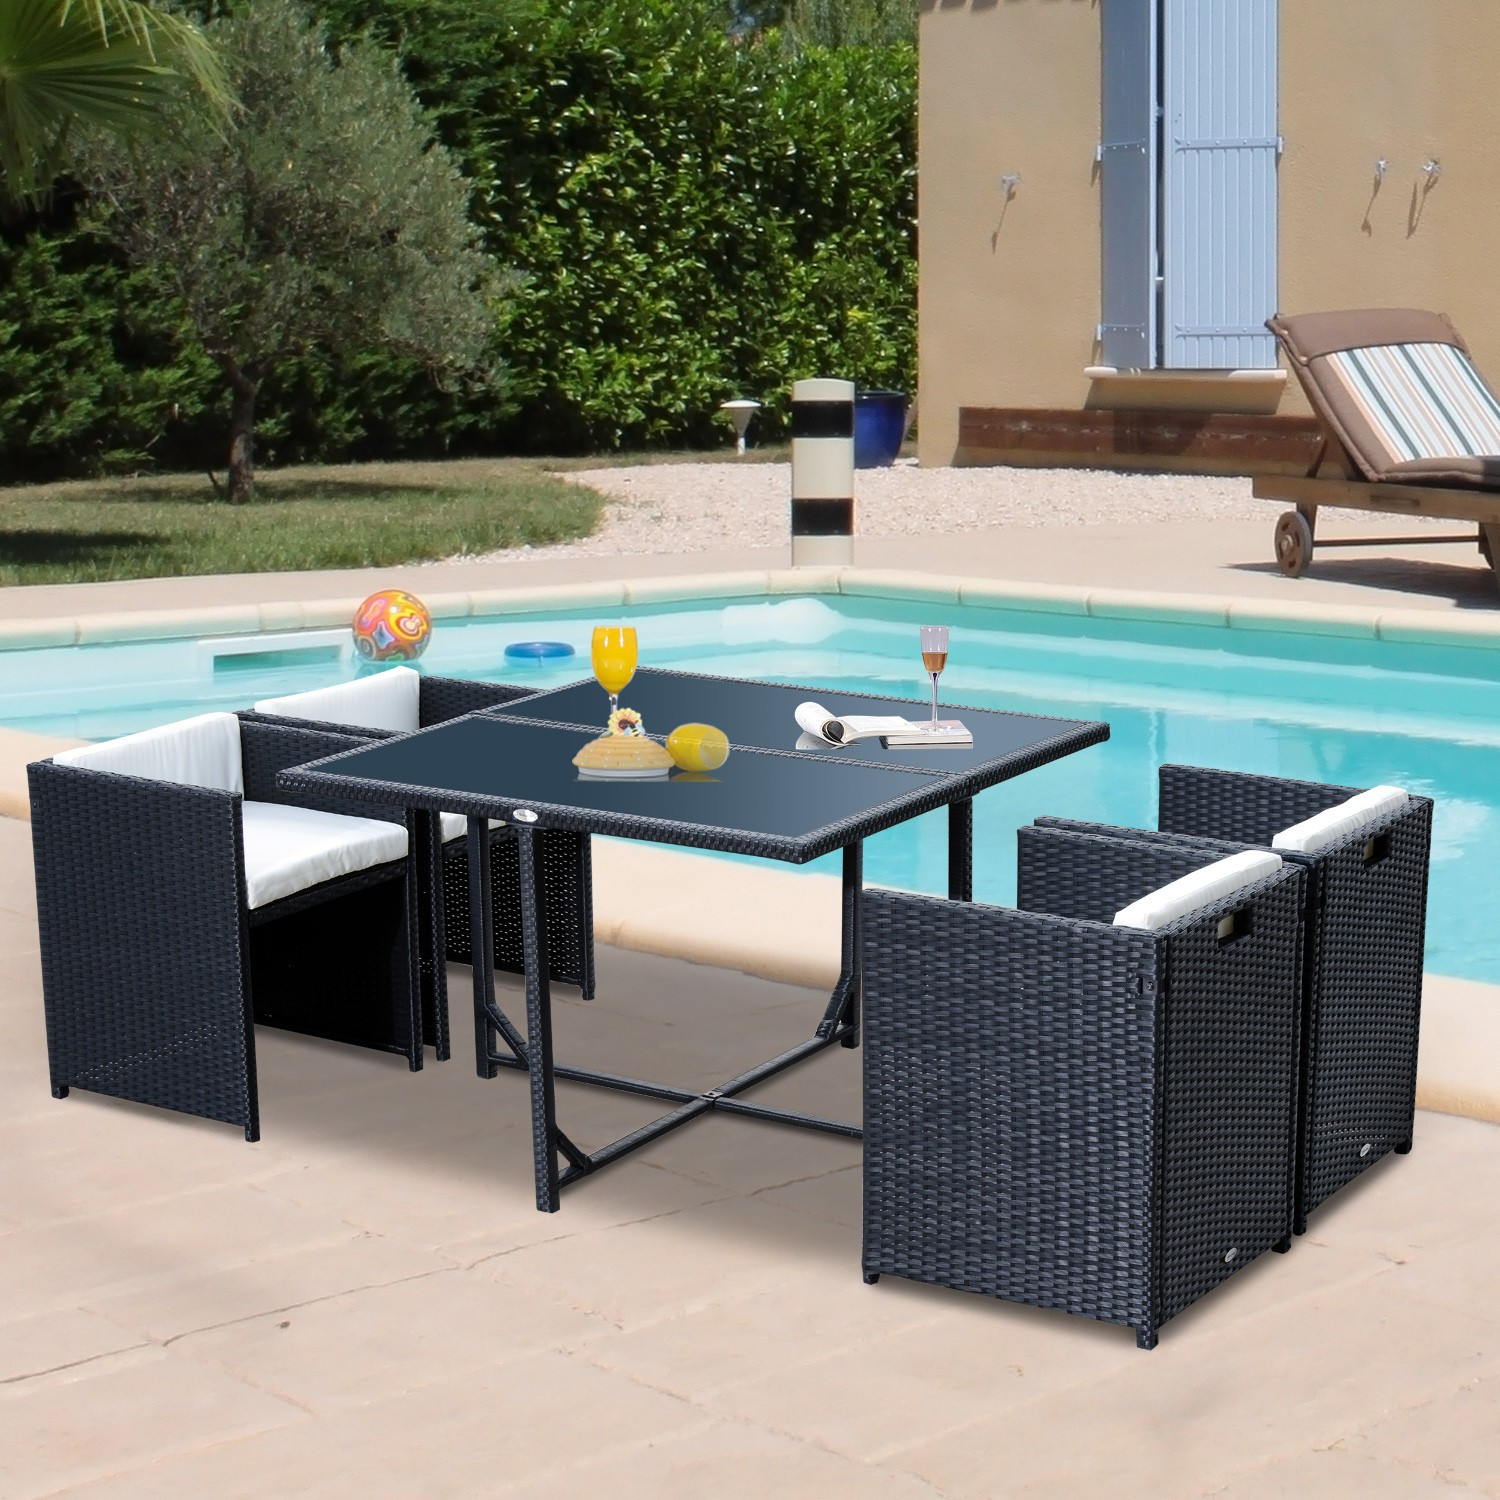 Best ideas about Outsunny Patio Furniture . Save or Pin Outsunny 5pcs Rattan Wicker Dining Sofa Table Set Outdoor Now.